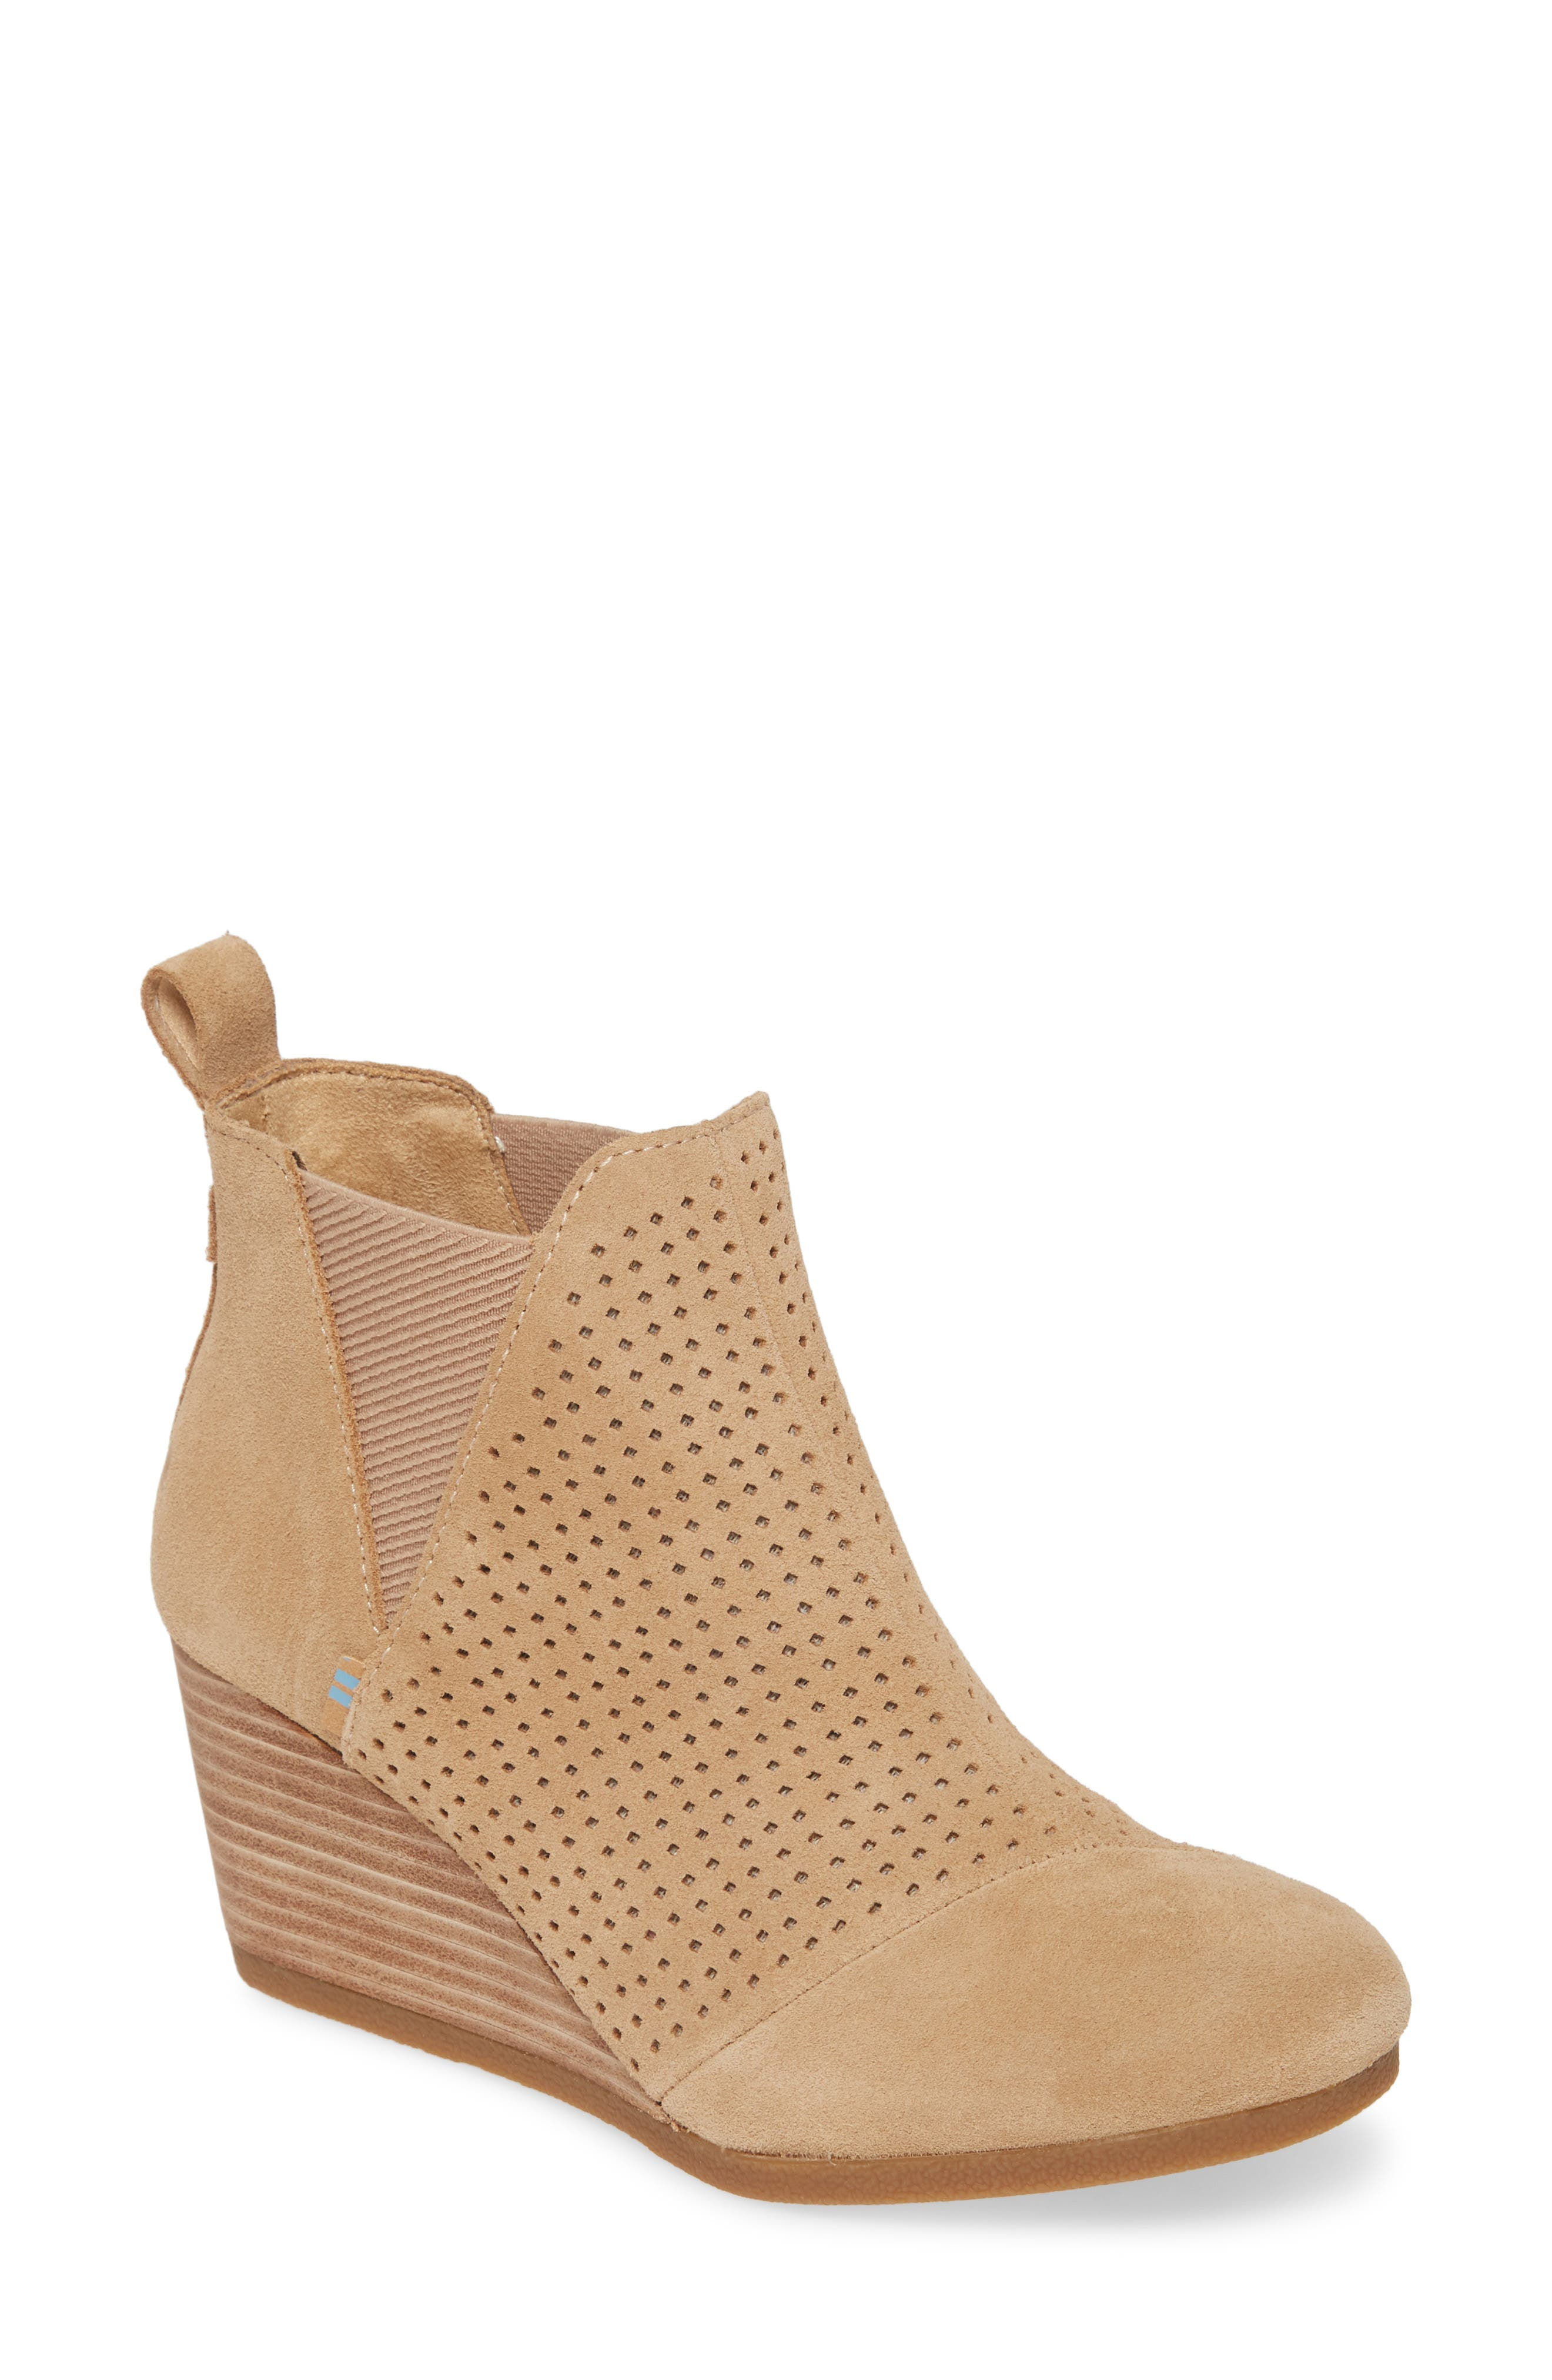 Allover perforations add modern edge to this Chelsea-inspired wedge bootie. Style Name: Toms Kelsey Bootie (Women). Style Number: 5899292 1. Available in stores.